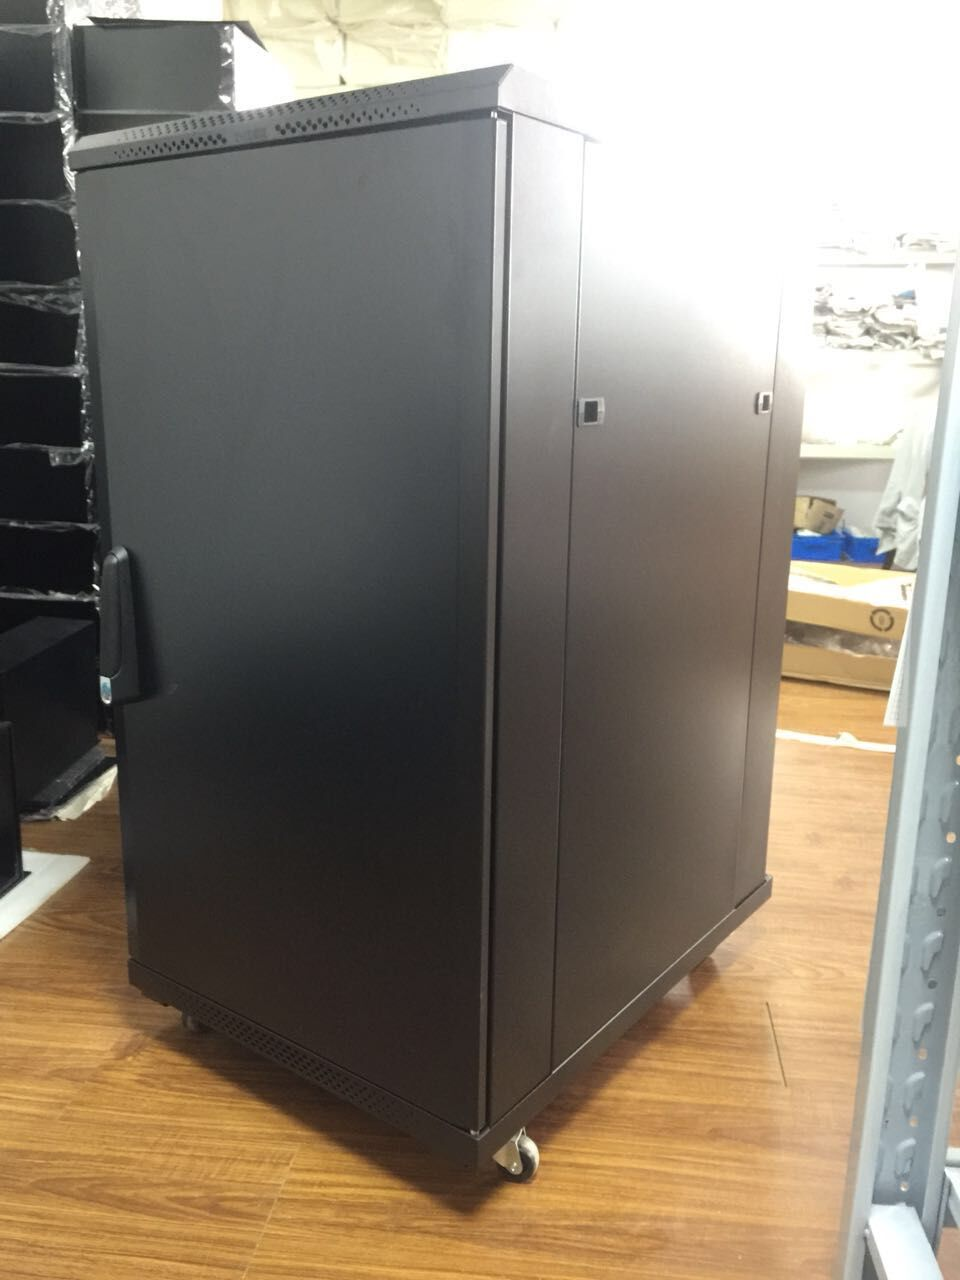 37U / 1800*600*600mm server cabinet aluminum enclosure for computer use 19 Inch Telecom Rack Network Server Cabinet